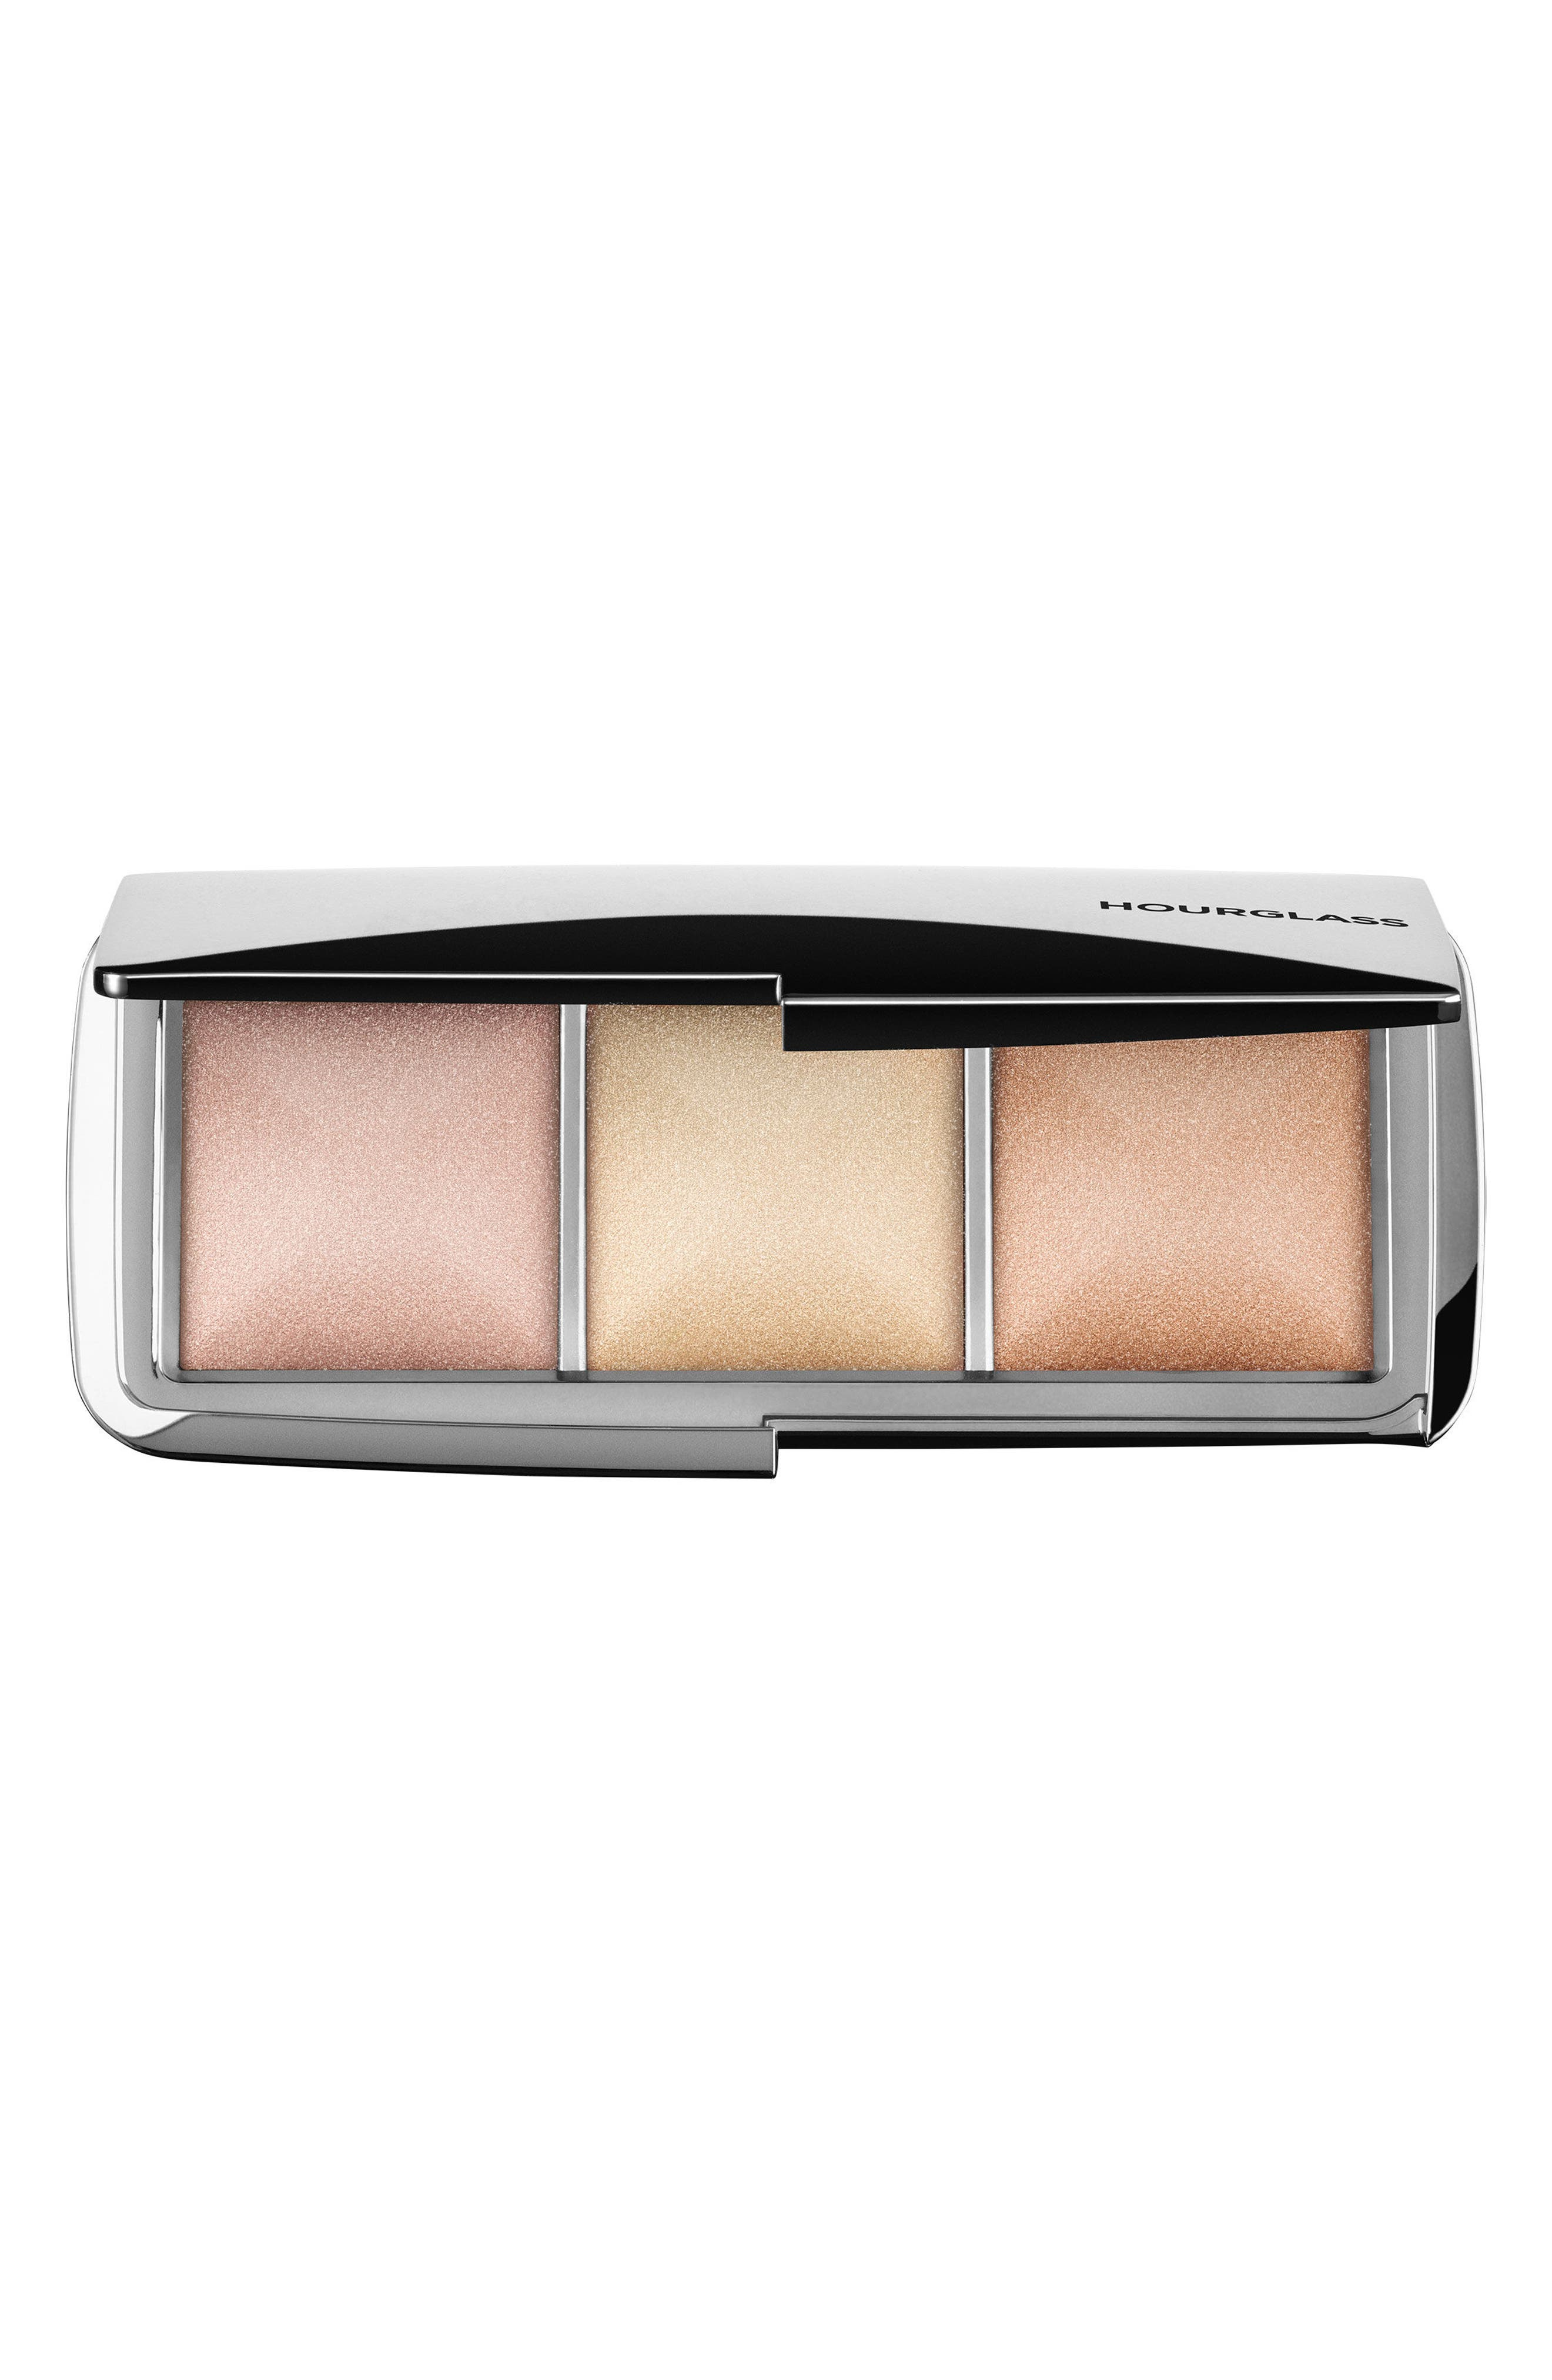 Main Image - HOURGLASS Ambient® Metallic Strobe Lighting Palette (Limited Edition)